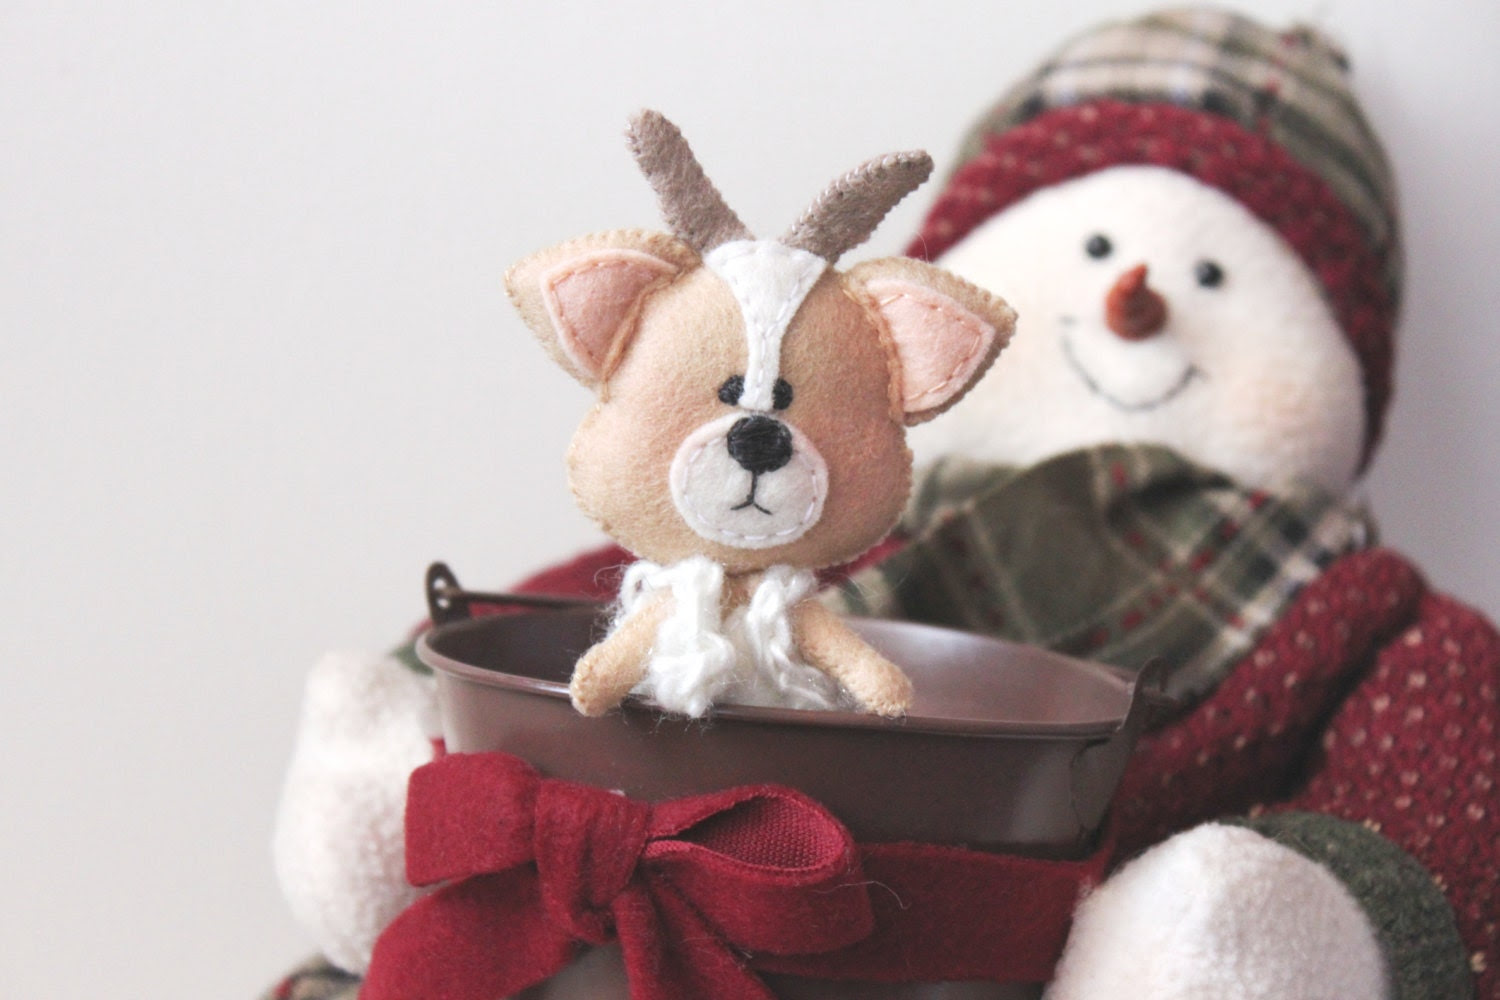 Limited Edition - Sweet Reindeer Christmas Ornament - Set of 3